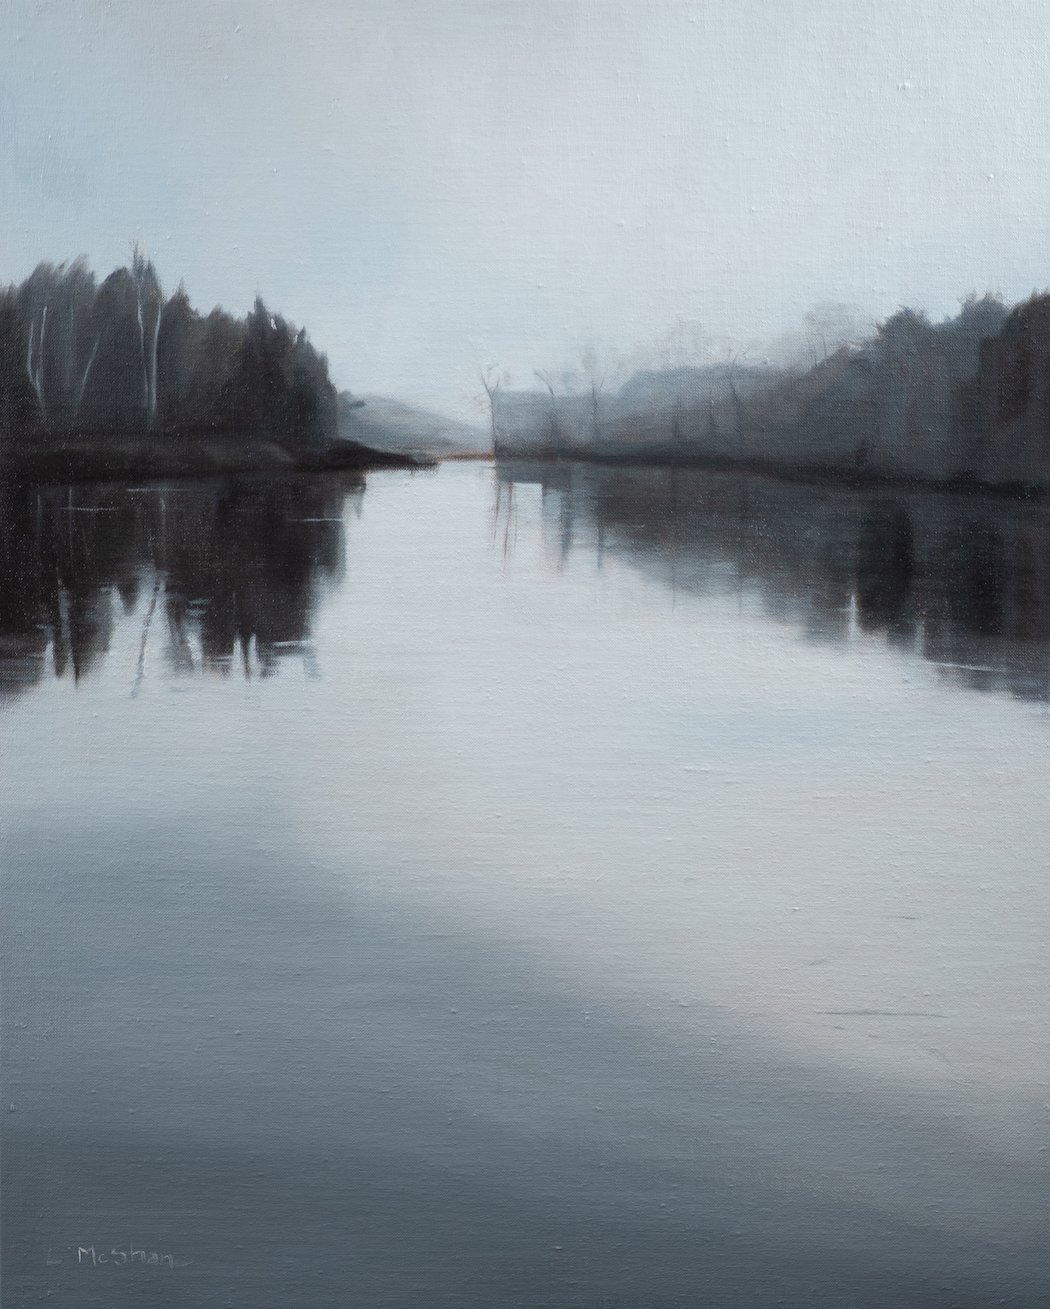 "Lisa McShane, Lhaq'te'mish: Morning Fog on the Nooksack Delta, 2020, Oil on Linen over Wood Panel, 30"" x 20"""